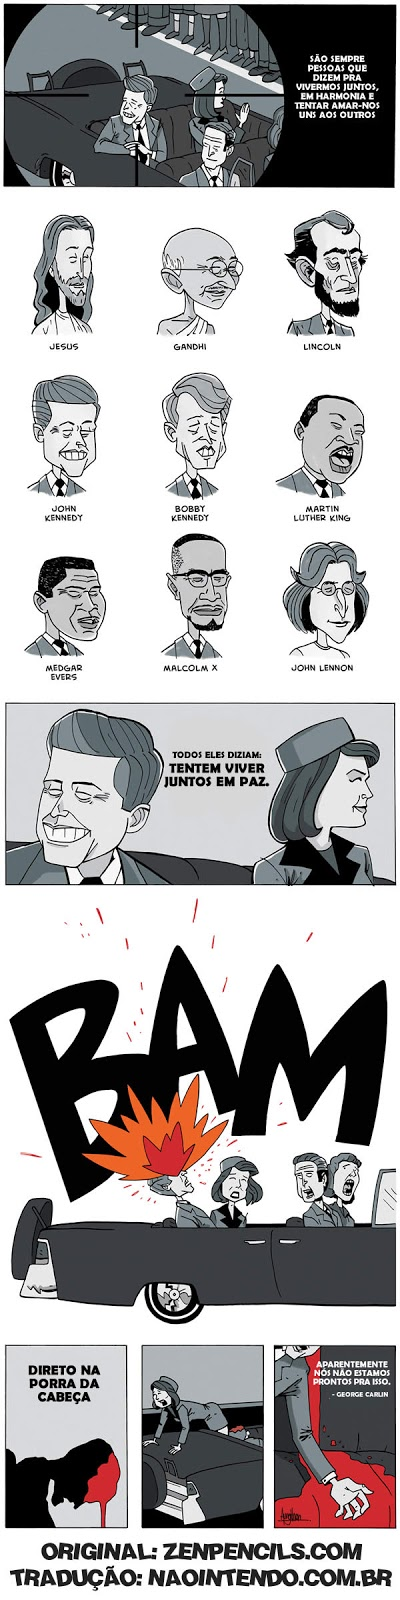 Sobre Assassinatos